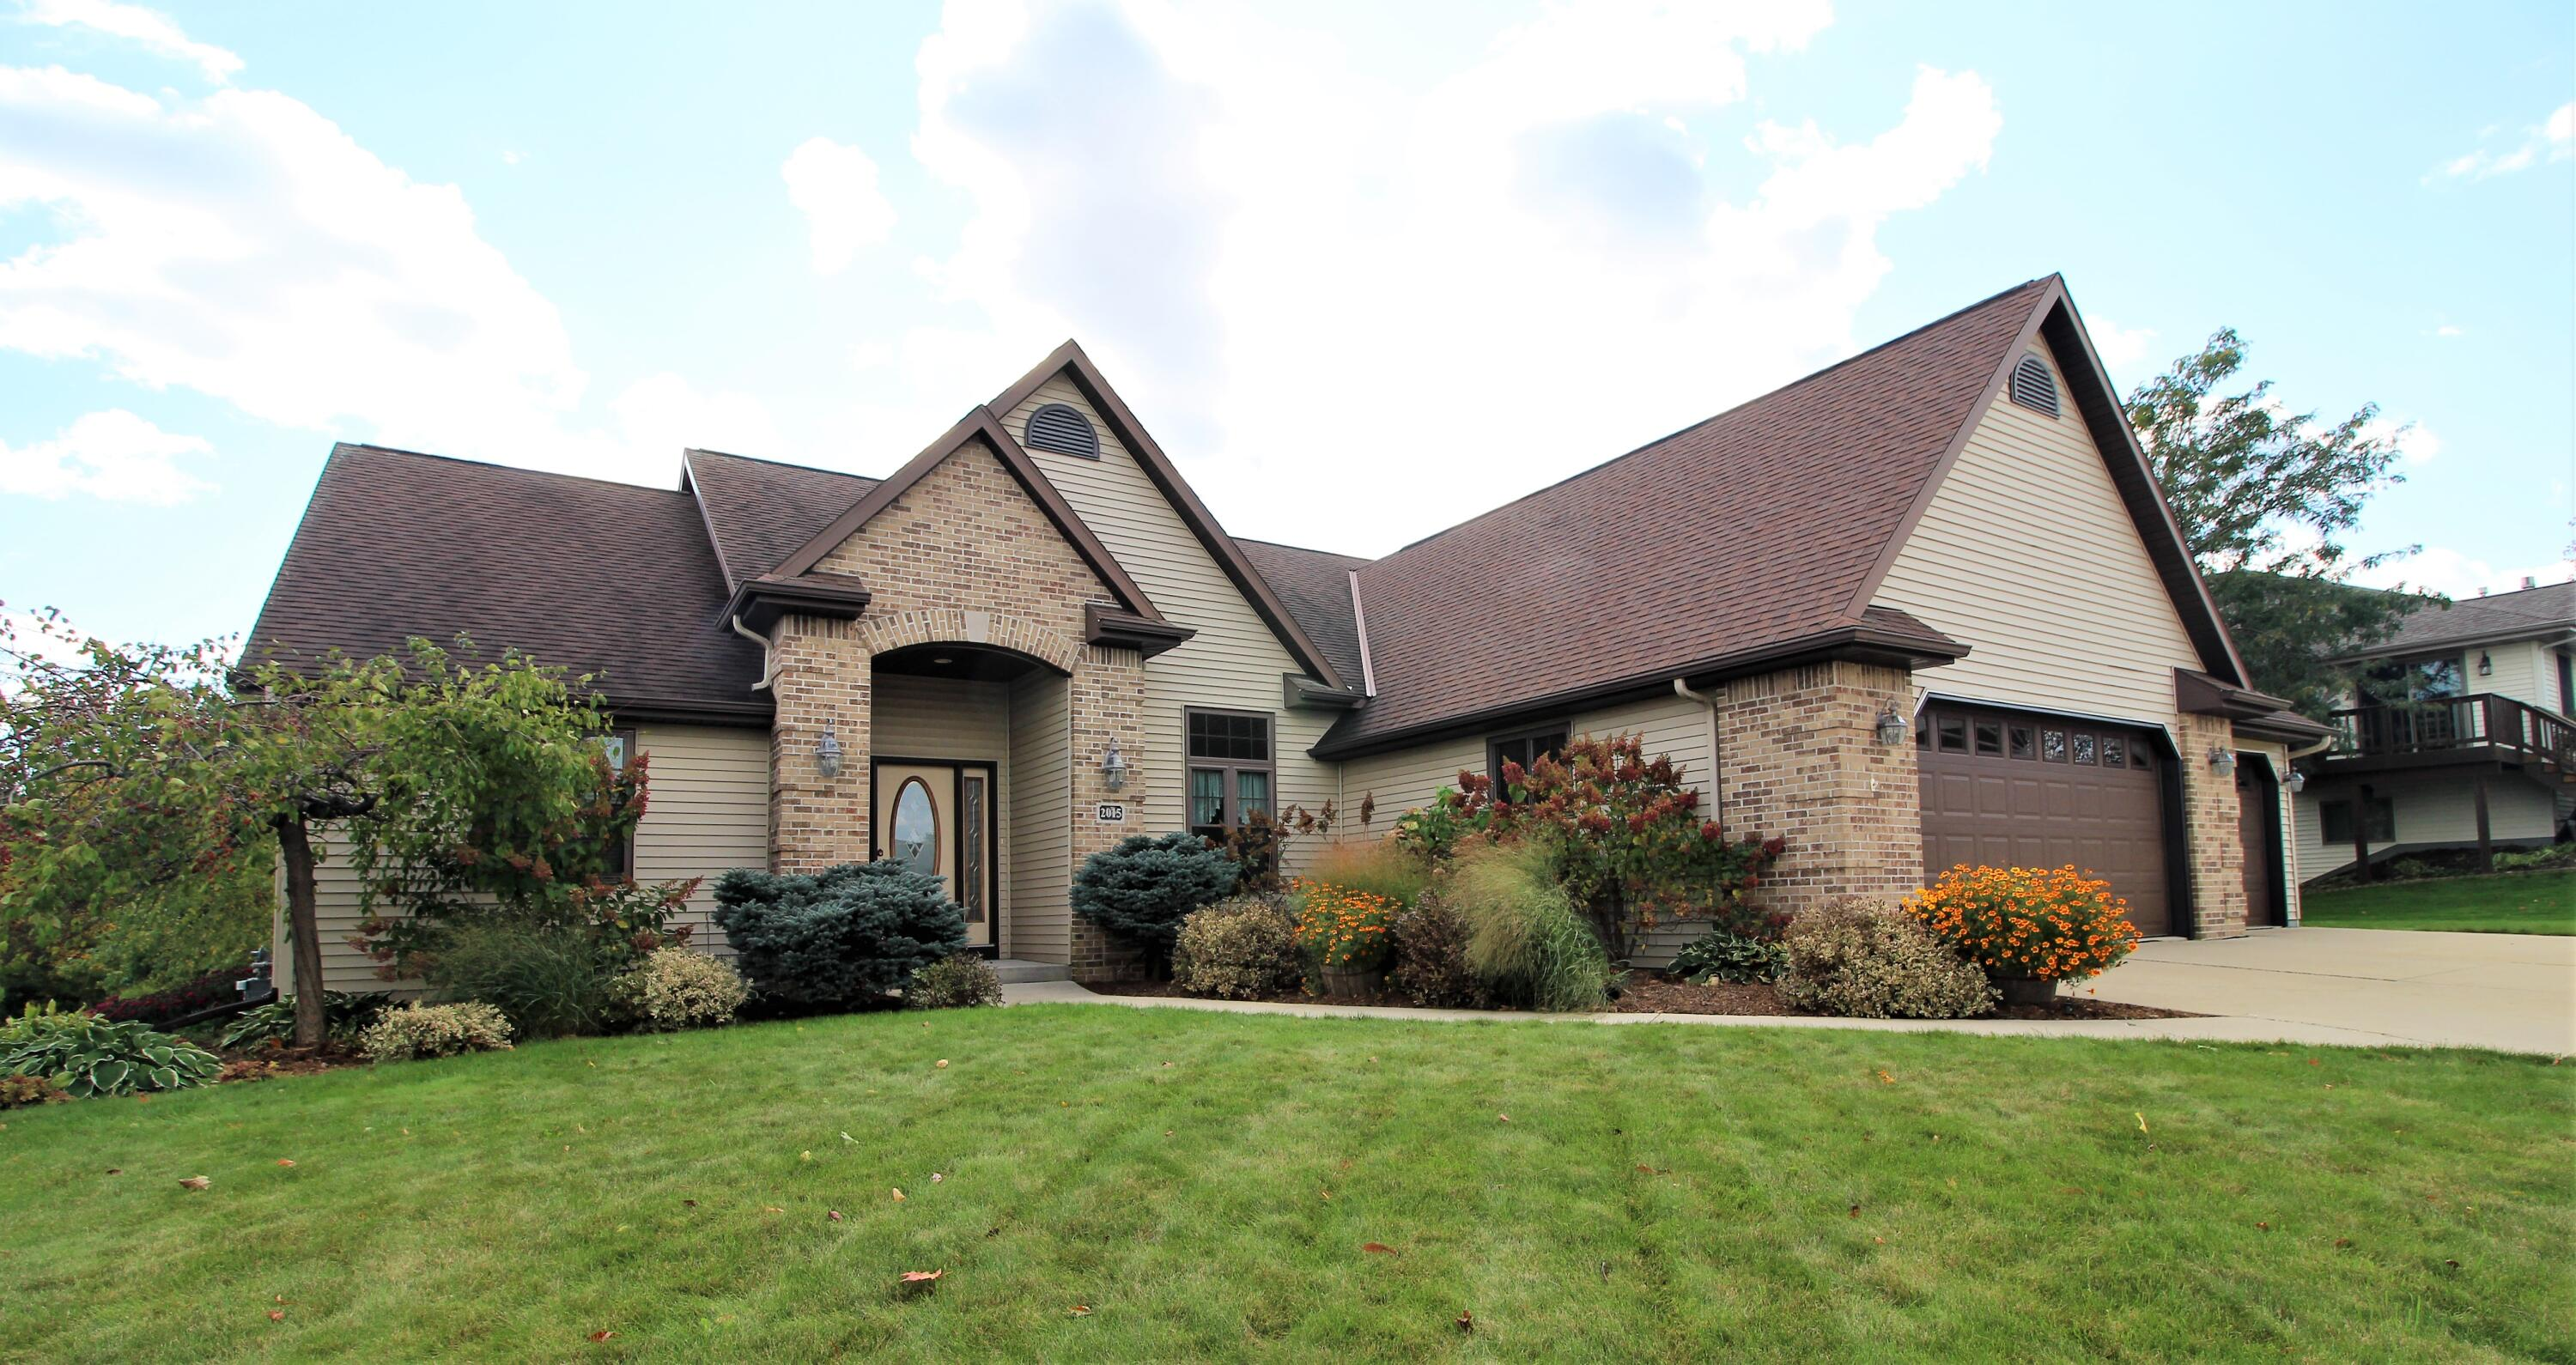 2015 Douglas Dr, Plymouth, Wisconsin 53073, 3 Bedrooms Bedrooms, 8 Rooms Rooms,2 BathroomsBathrooms,Single-Family,For Sale,Douglas Dr,1768295